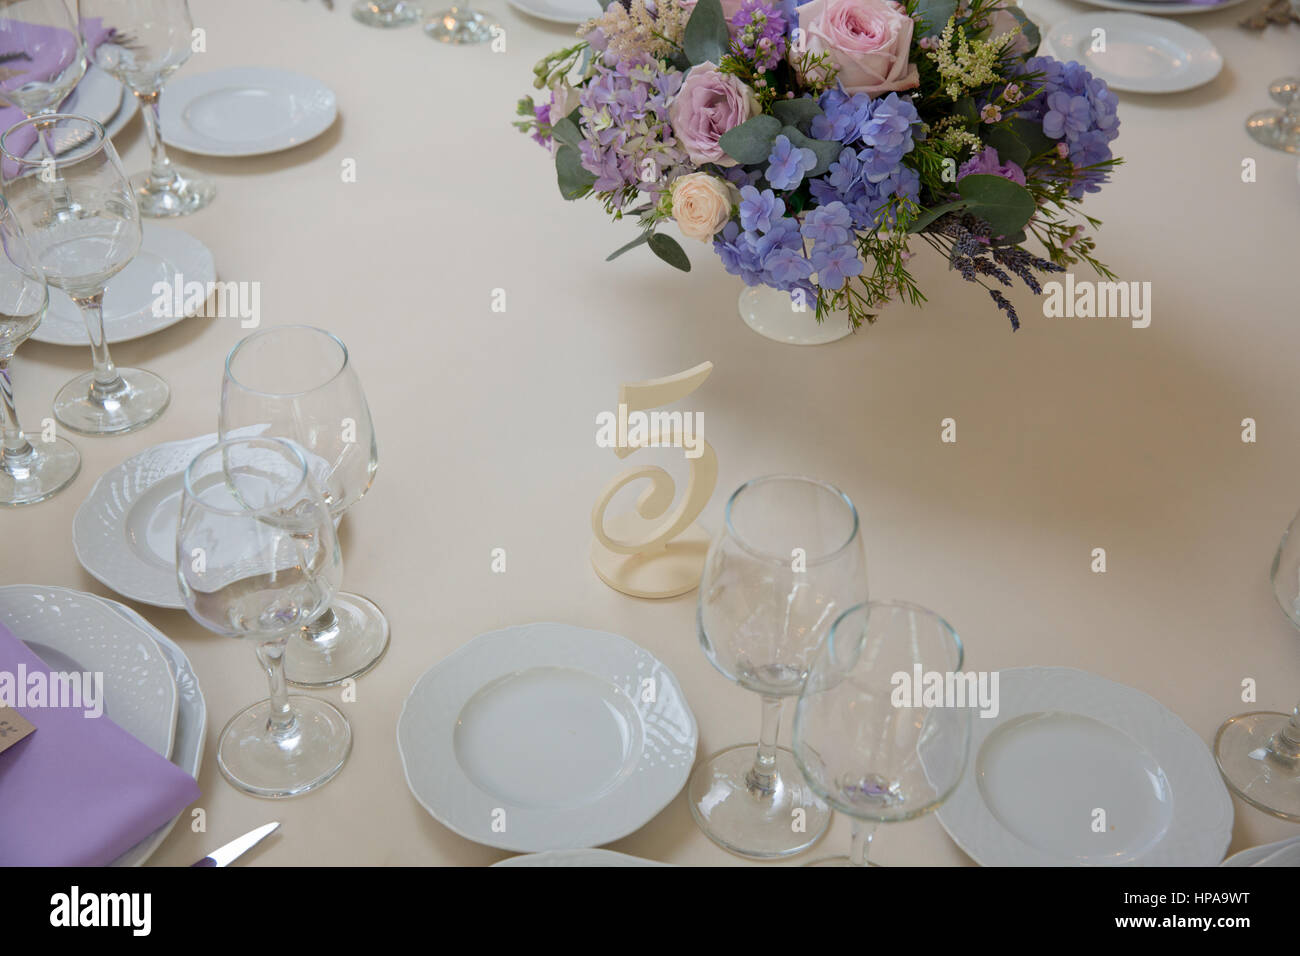 Wedding Flower Arrangement With Blue Violet Pink Flowers Stock Photo